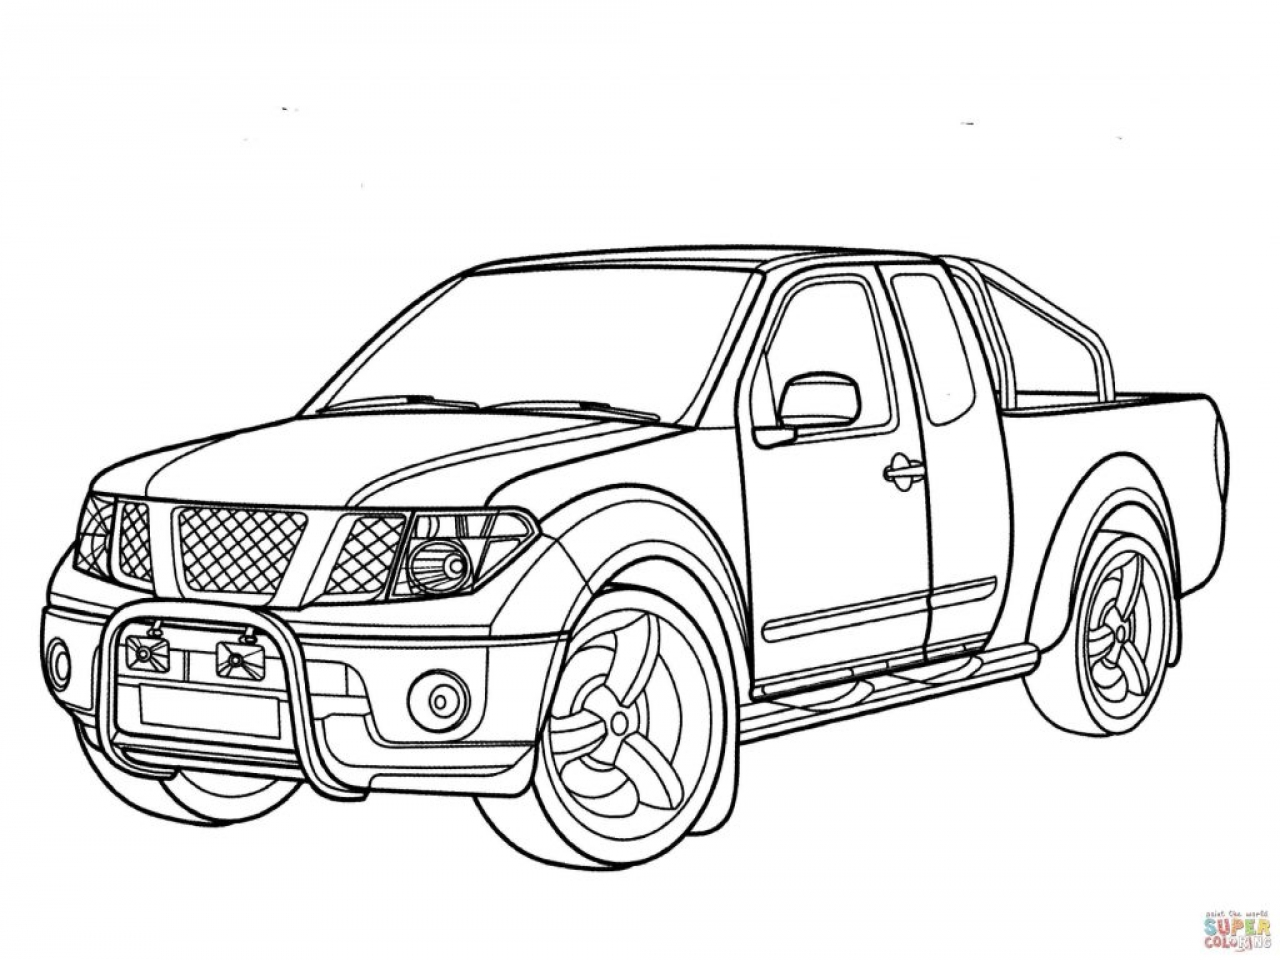 pickup truck drawing at getdrawings free for personal use Road Runner 4x4 1280x960 4x4 truck coloring pages nissan navara page transportation pickup